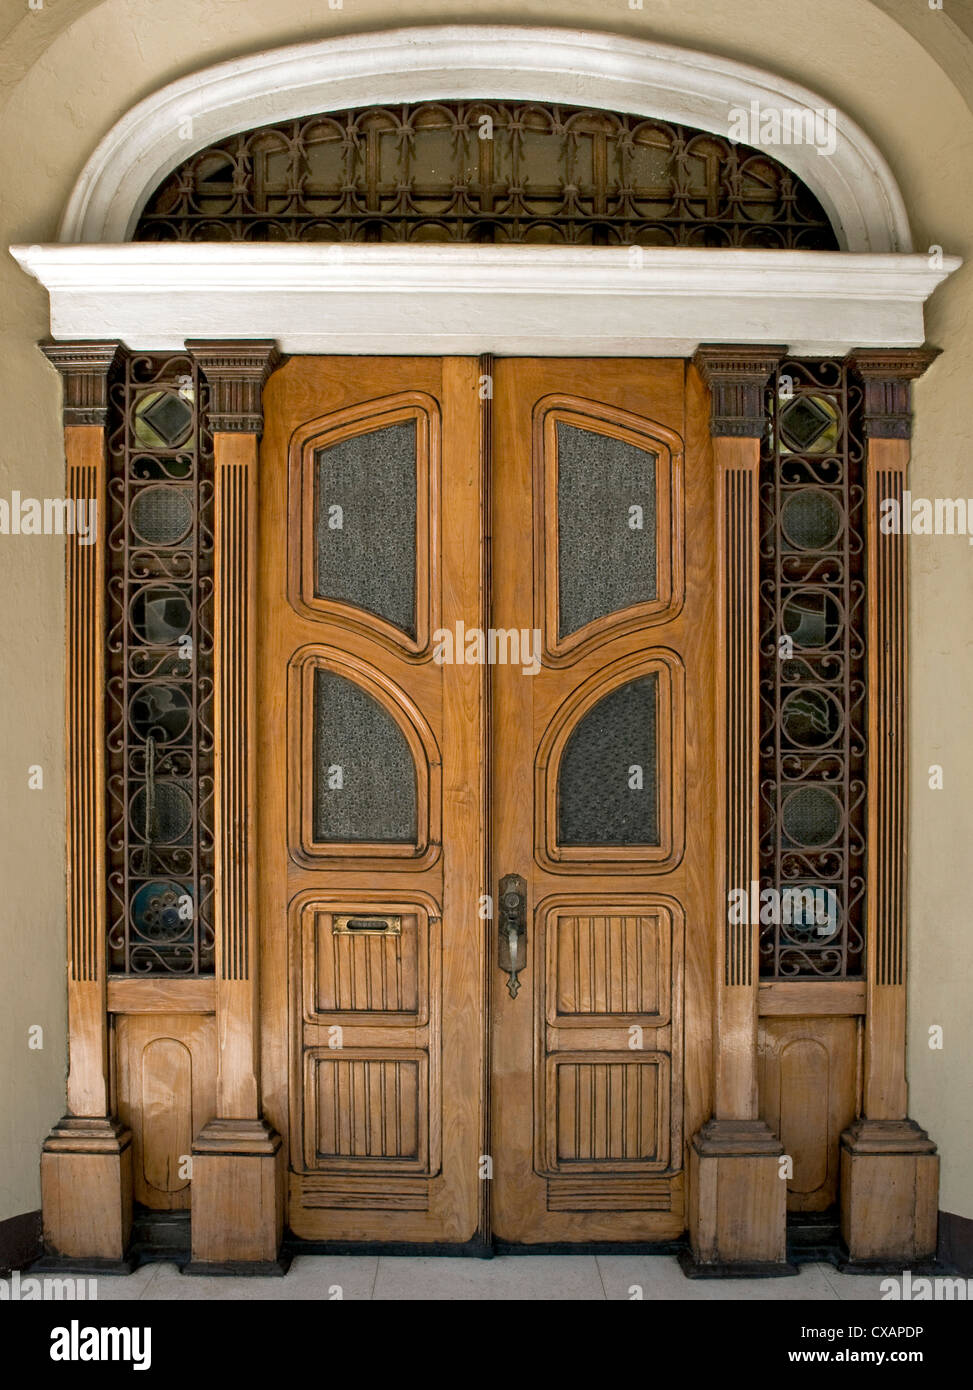 Art Nouveau style door, Iloilo, Philippines, Southeast Asia, Asia - Stock Image